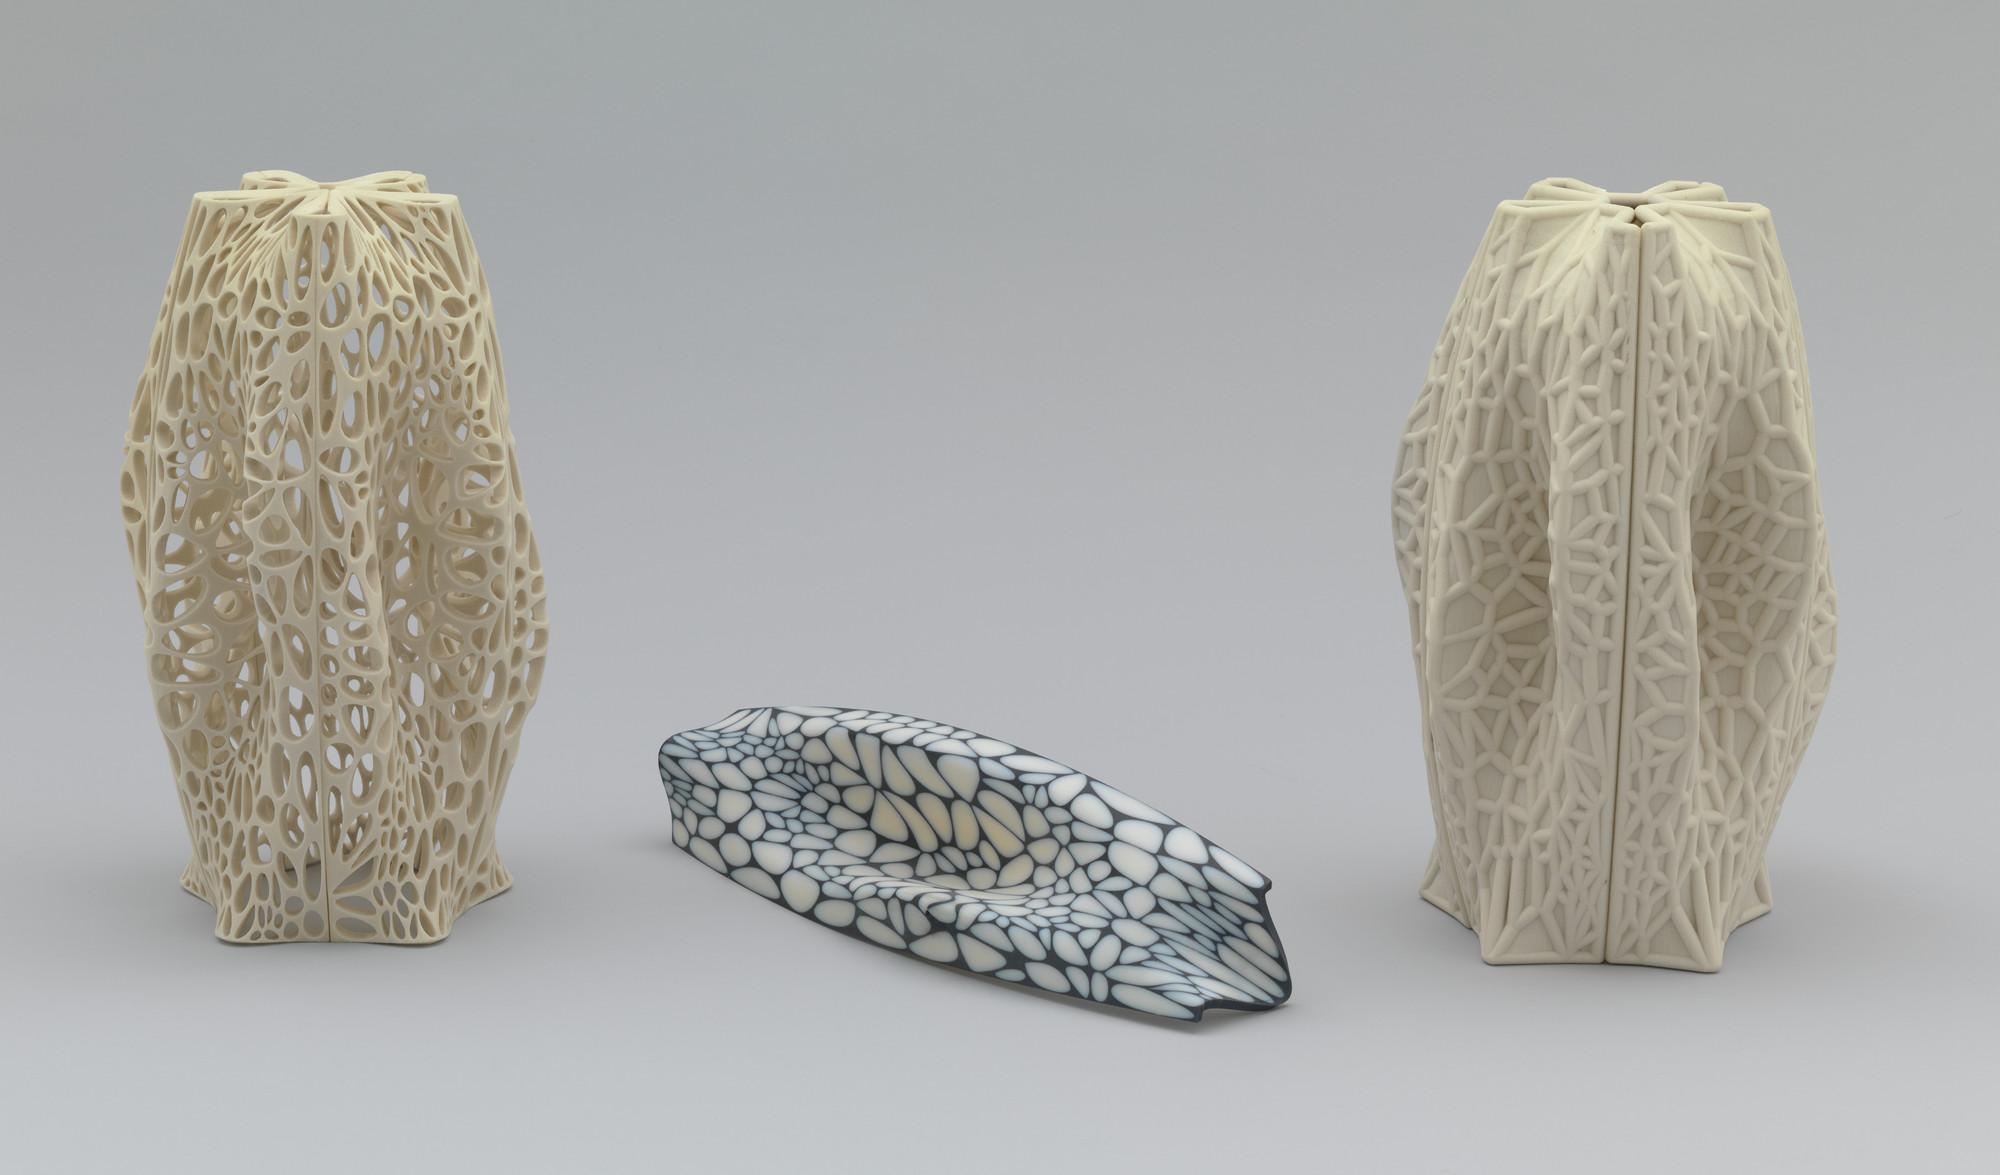 Neri Oxman, Massachusetts Institute of Technology, Cambridge, MA. Monocoque, from the Materialecology project. 2007